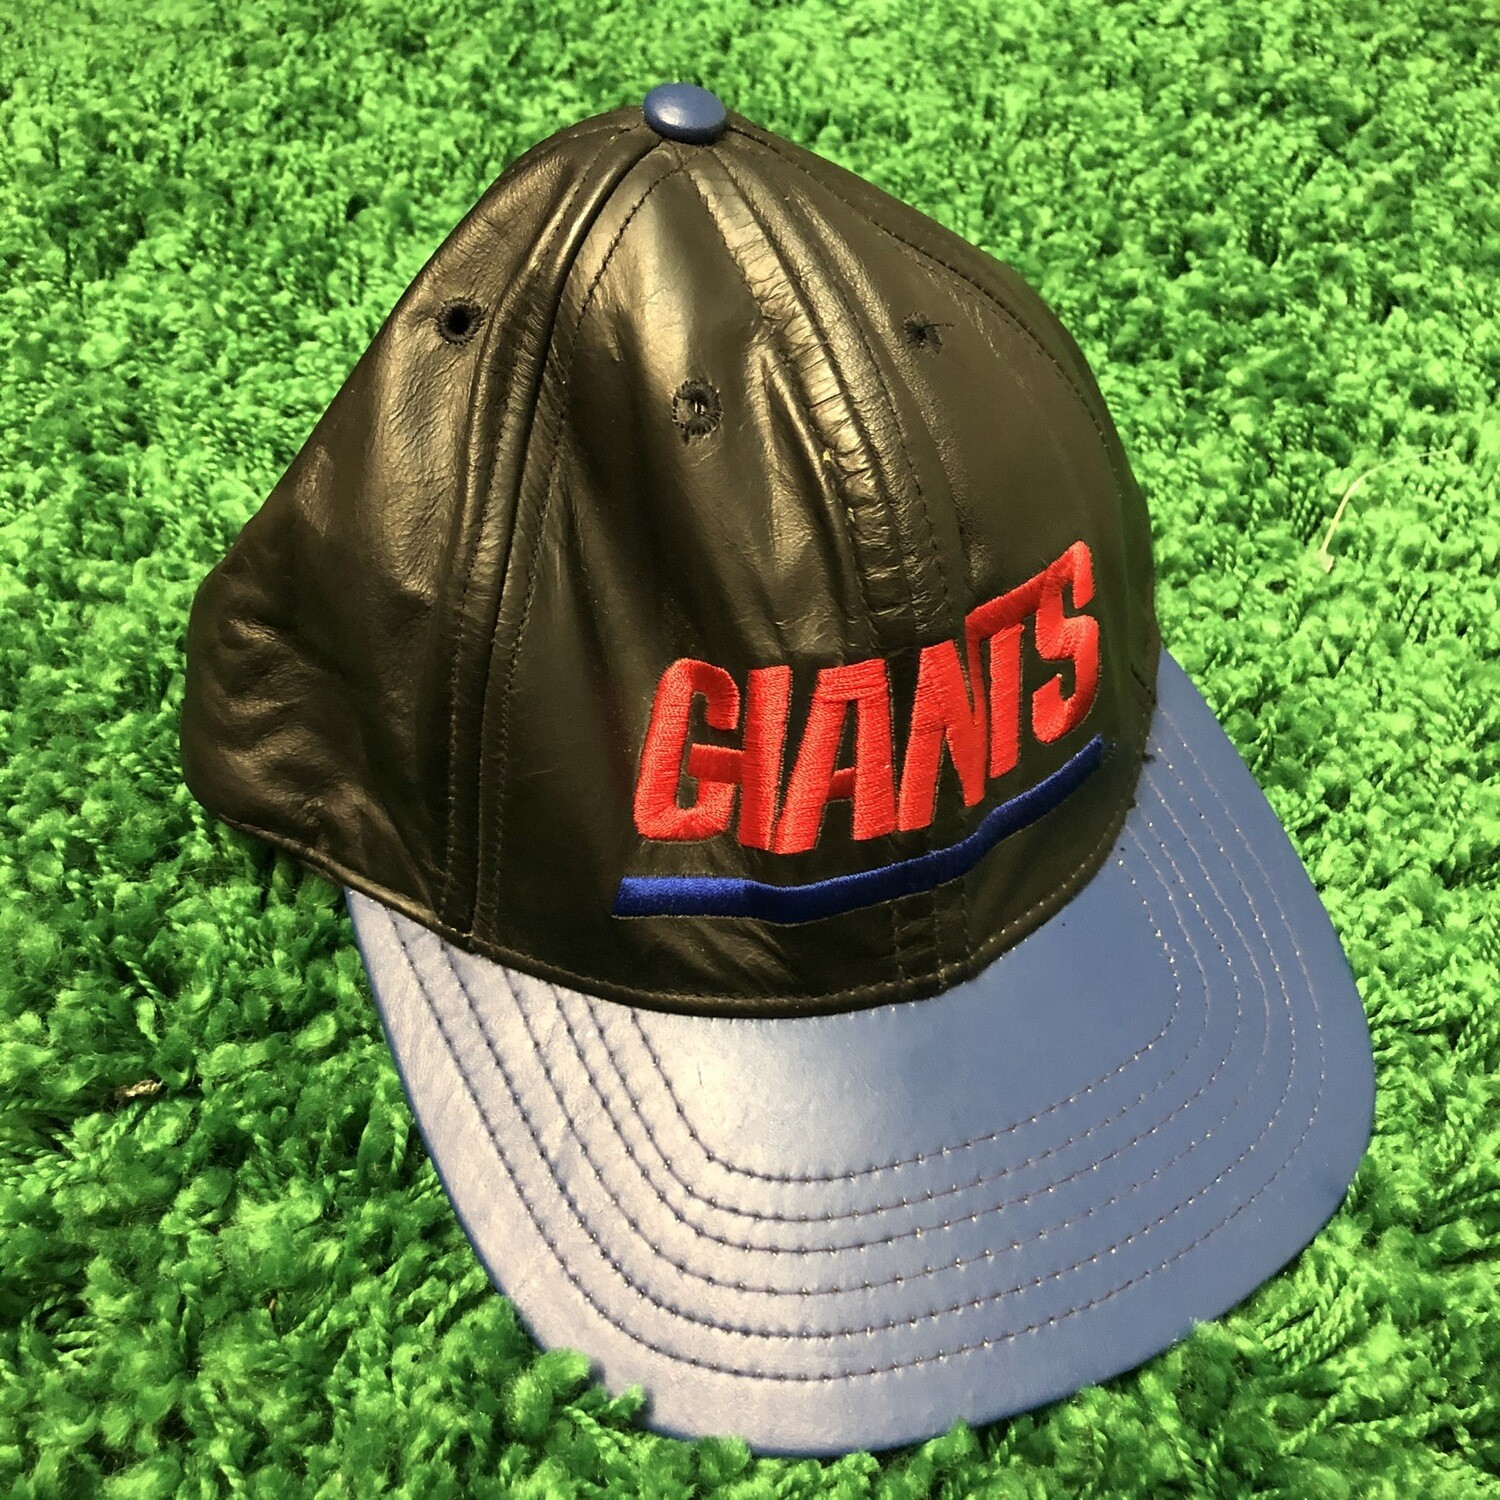 New York Giants Leather Hat